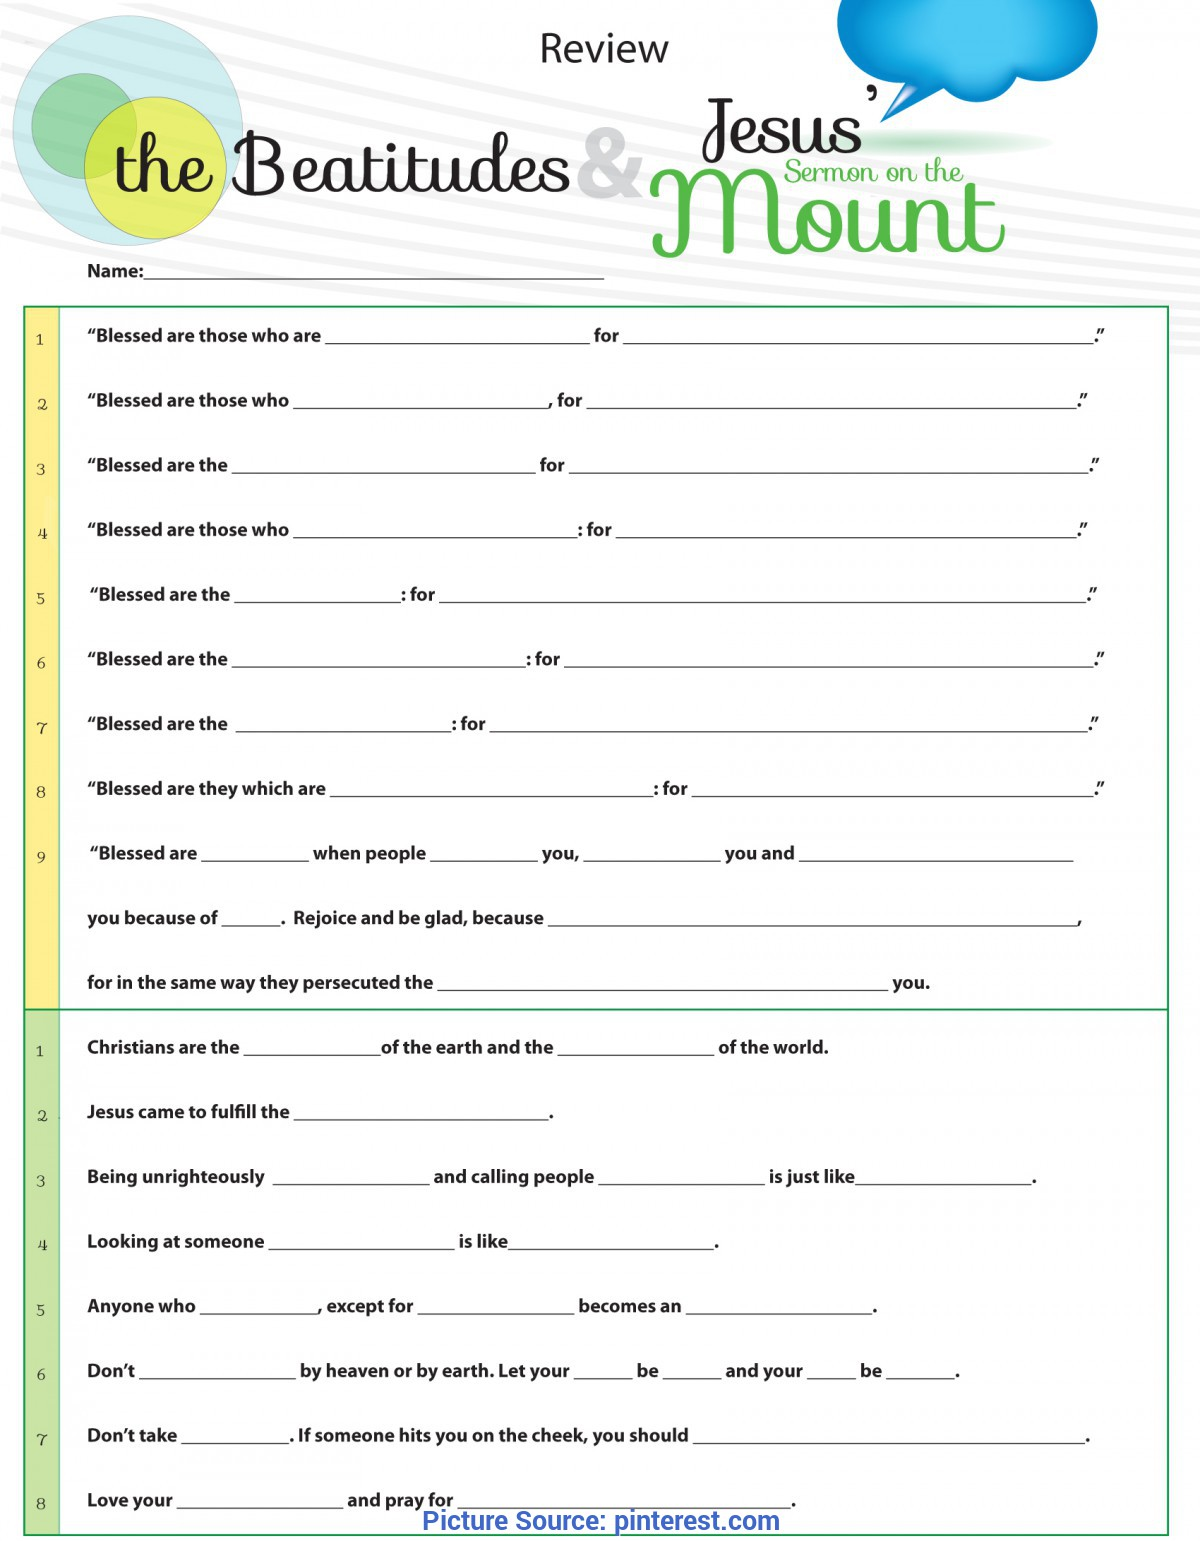 Unusual Lesson Plan For Sunday School Youth Worksheet To Teach Jesus Sermon On The Mount From